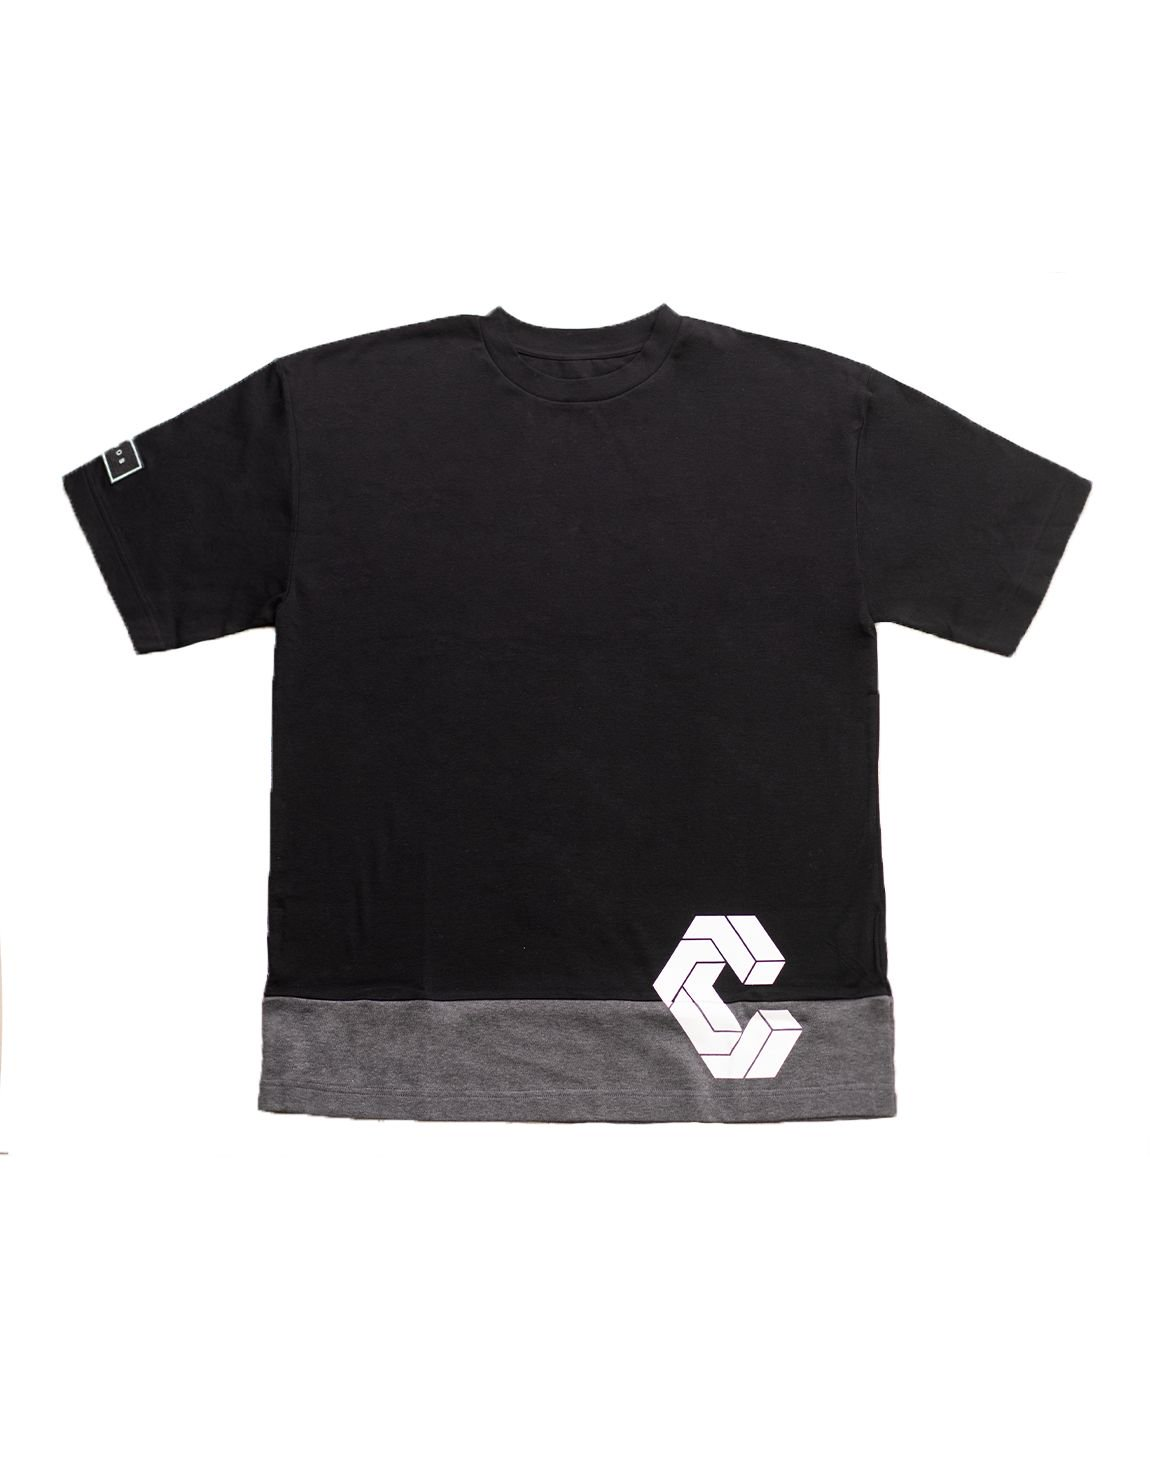 <img class='new_mark_img1' src='https://img.shop-pro.jp/img/new/icons1.gif' style='border:none;display:inline;margin:0px;padding:0px;width:auto;' />CRONOS MODE SIDE LOGO OVER SIZE T-SHIRTS【BLACK×C.GRAY】